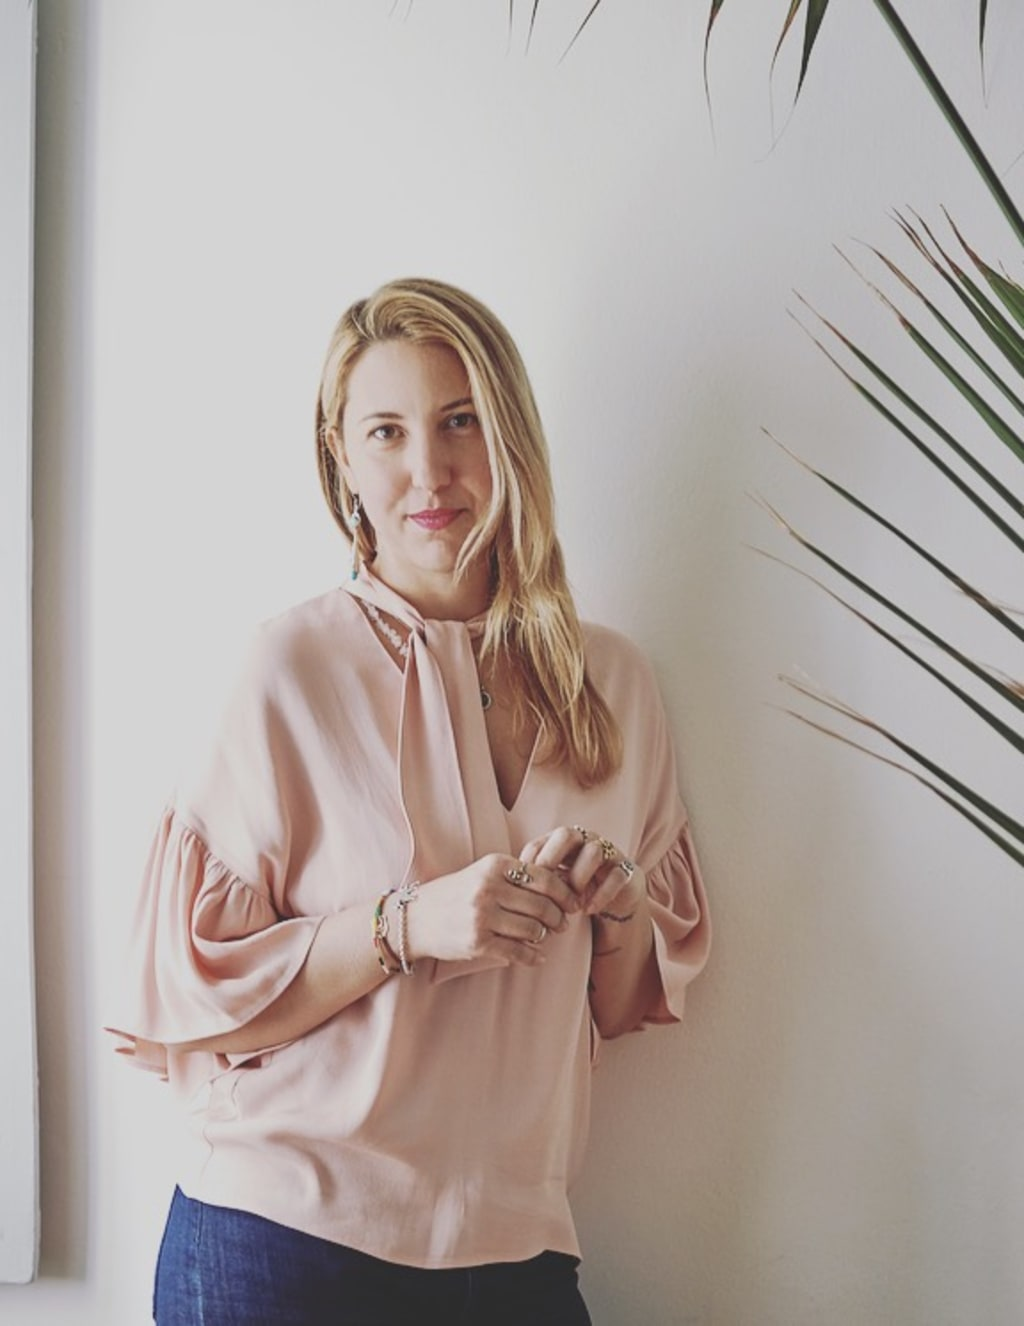 Italian Fashion Light Worker Author's New Mindfulness Book Tool